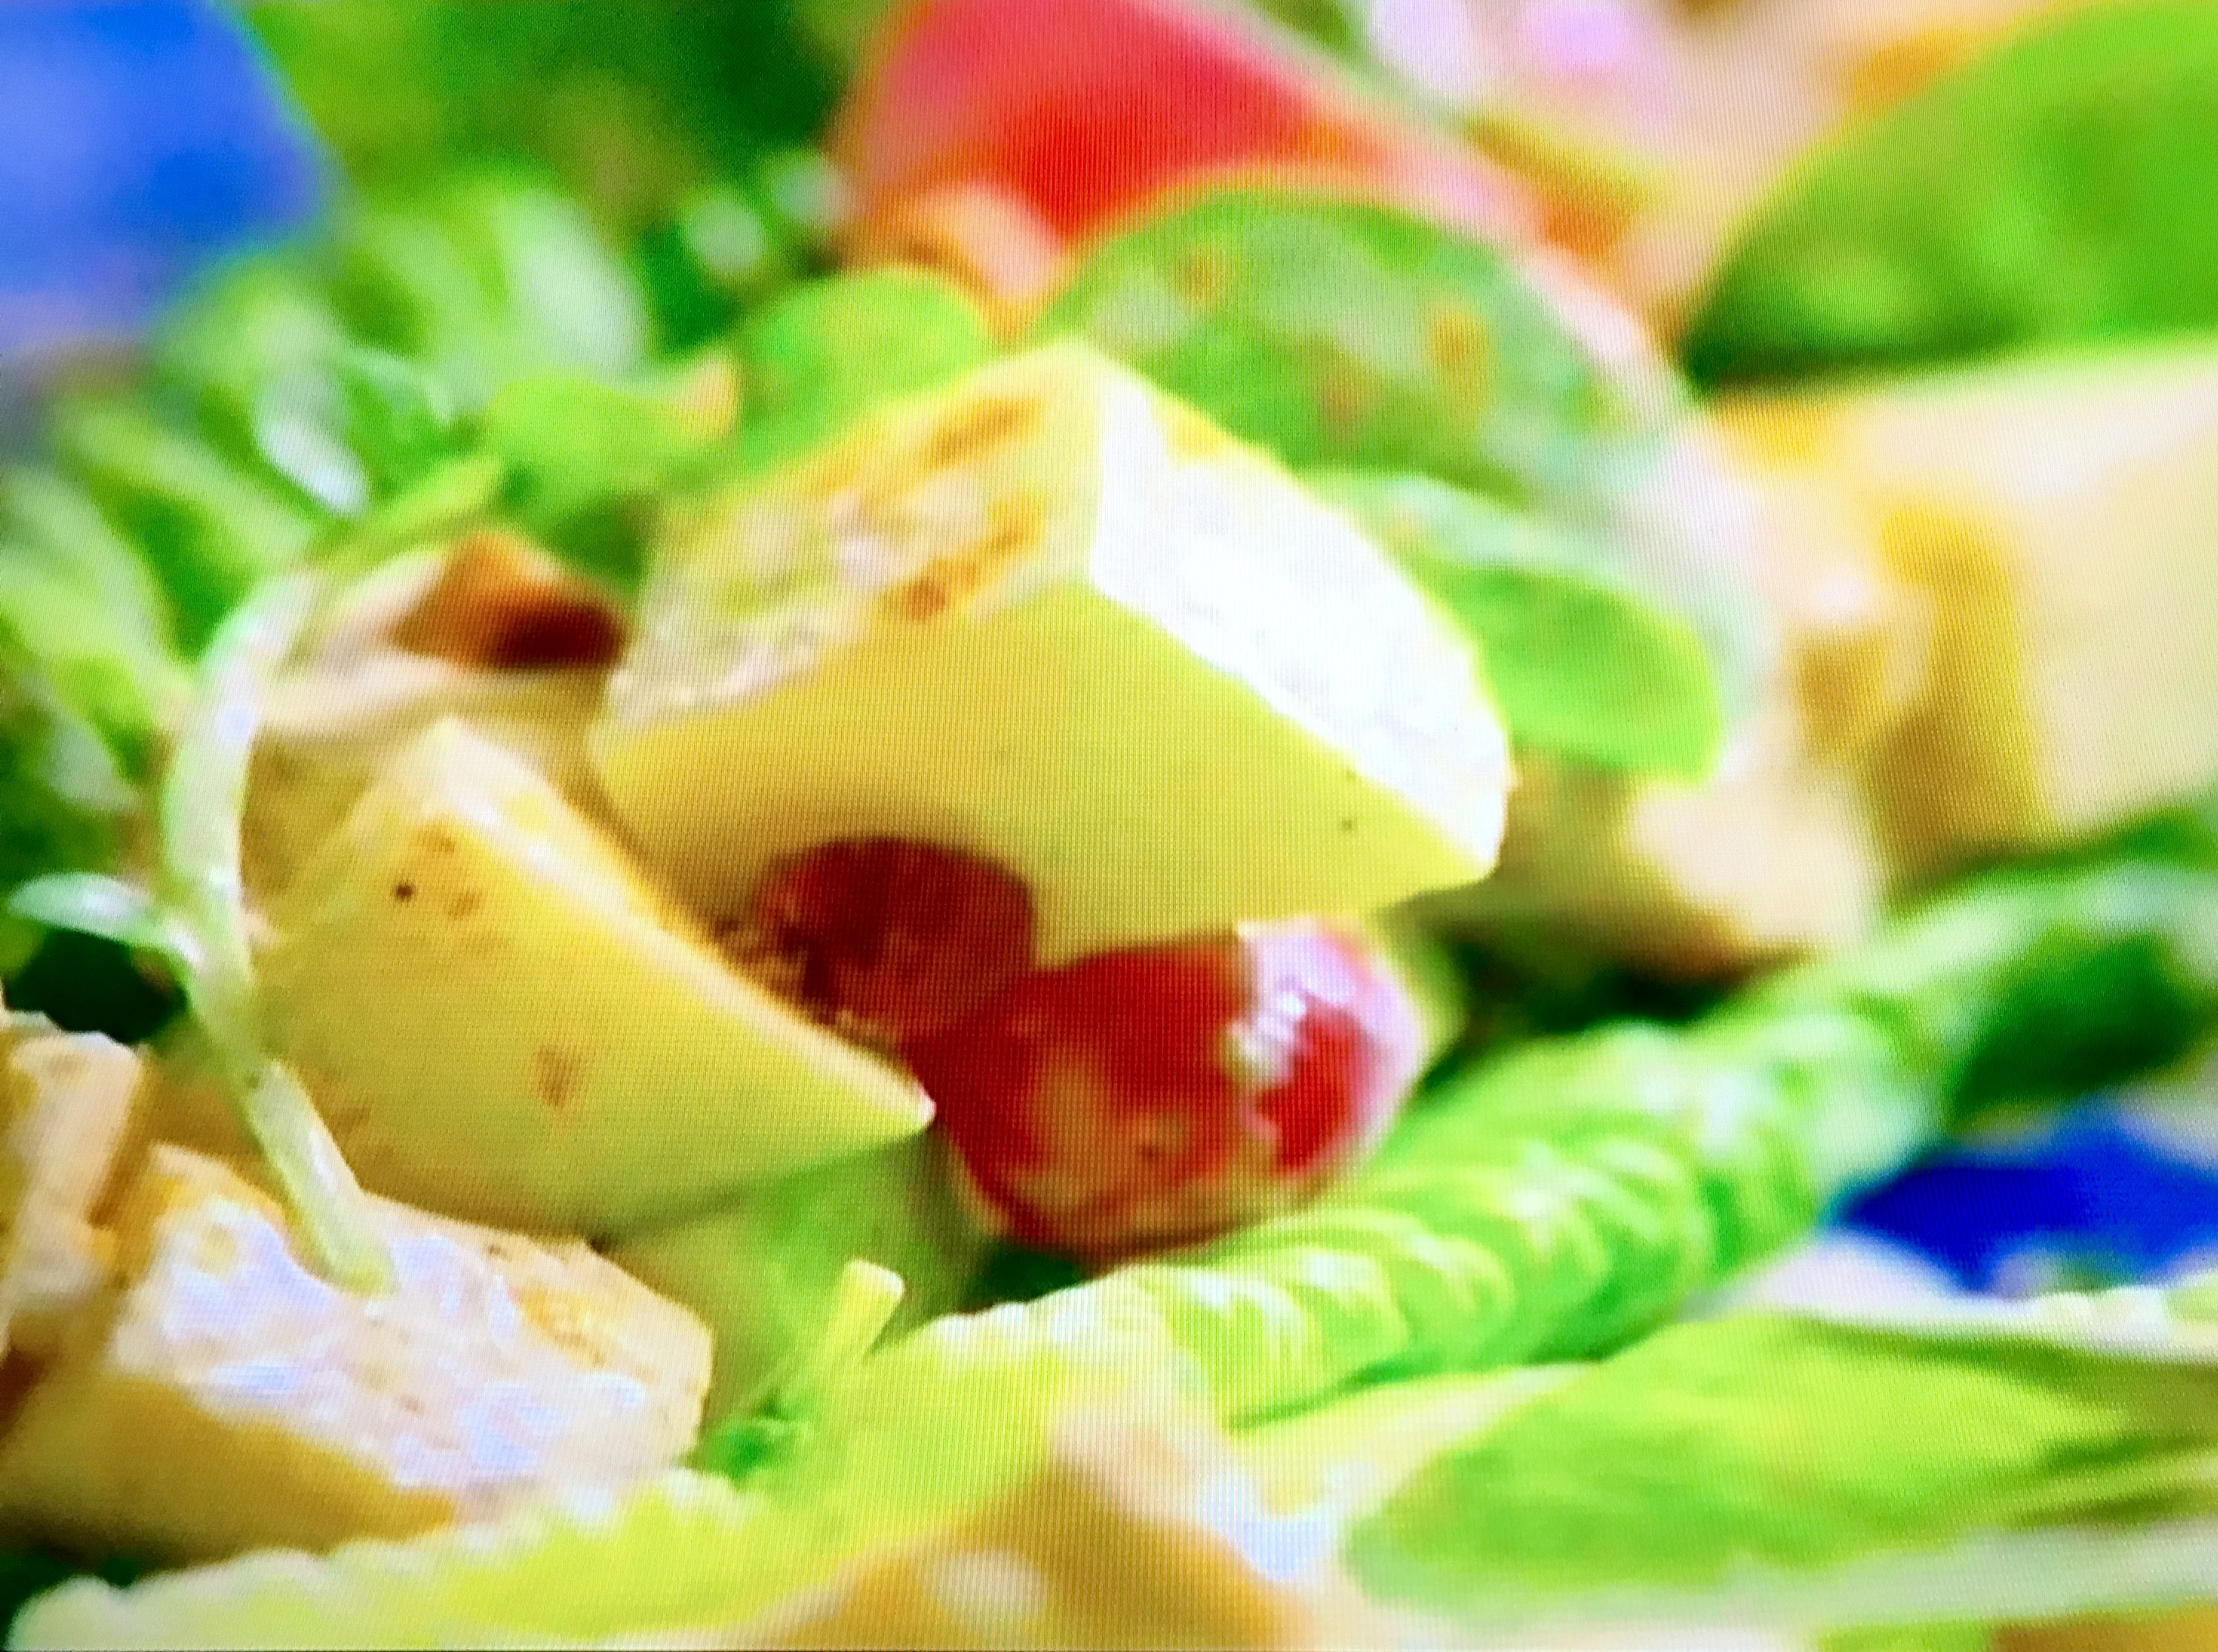 Chicken salad with apples and grapes recipe valerie bertinelli chicken salad with apples and grapes recipe valerie bertinelli salad and apples forumfinder Image collections